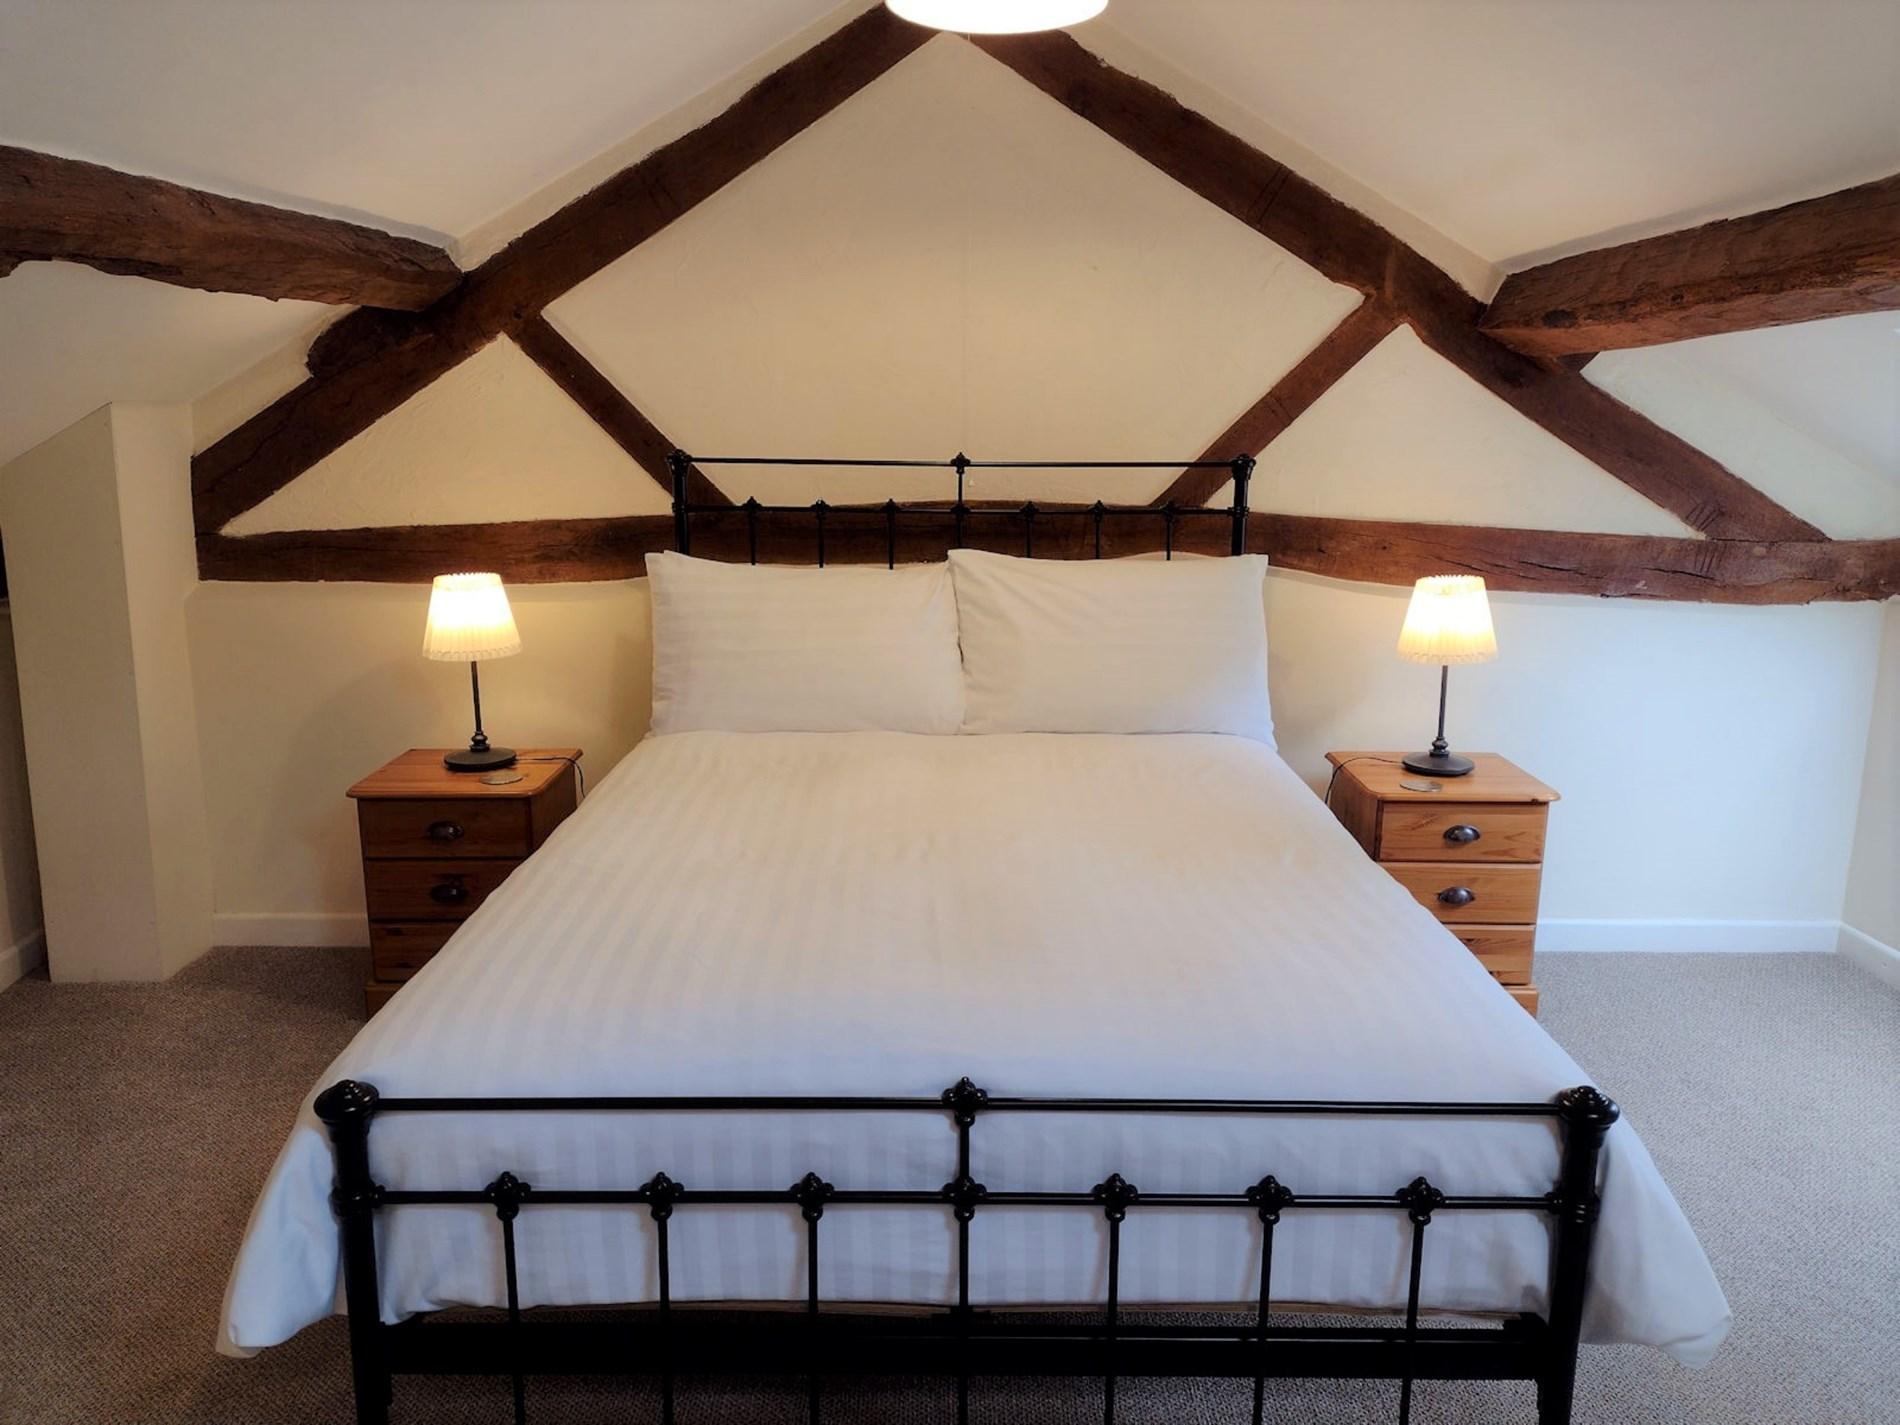 1 Bedroom Barn in Mid Wales, Pembrokeshire and the South